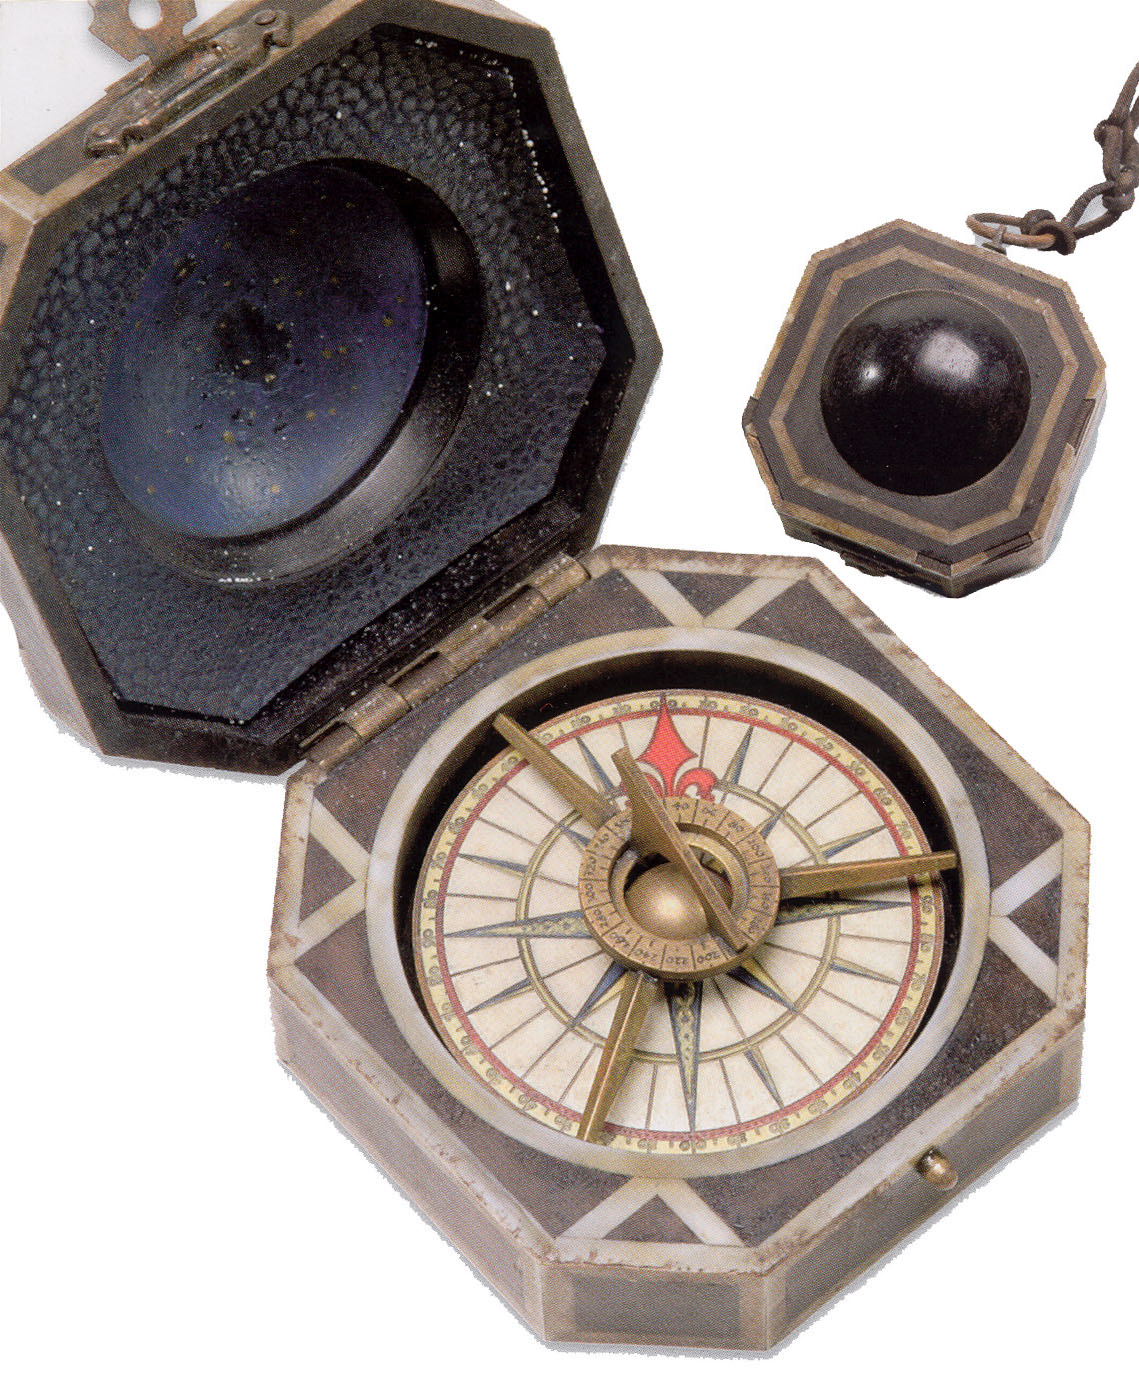 JACK SPARROW PIRATES OF THE CARIBBEAN SPINNING COMPASS REPLICA